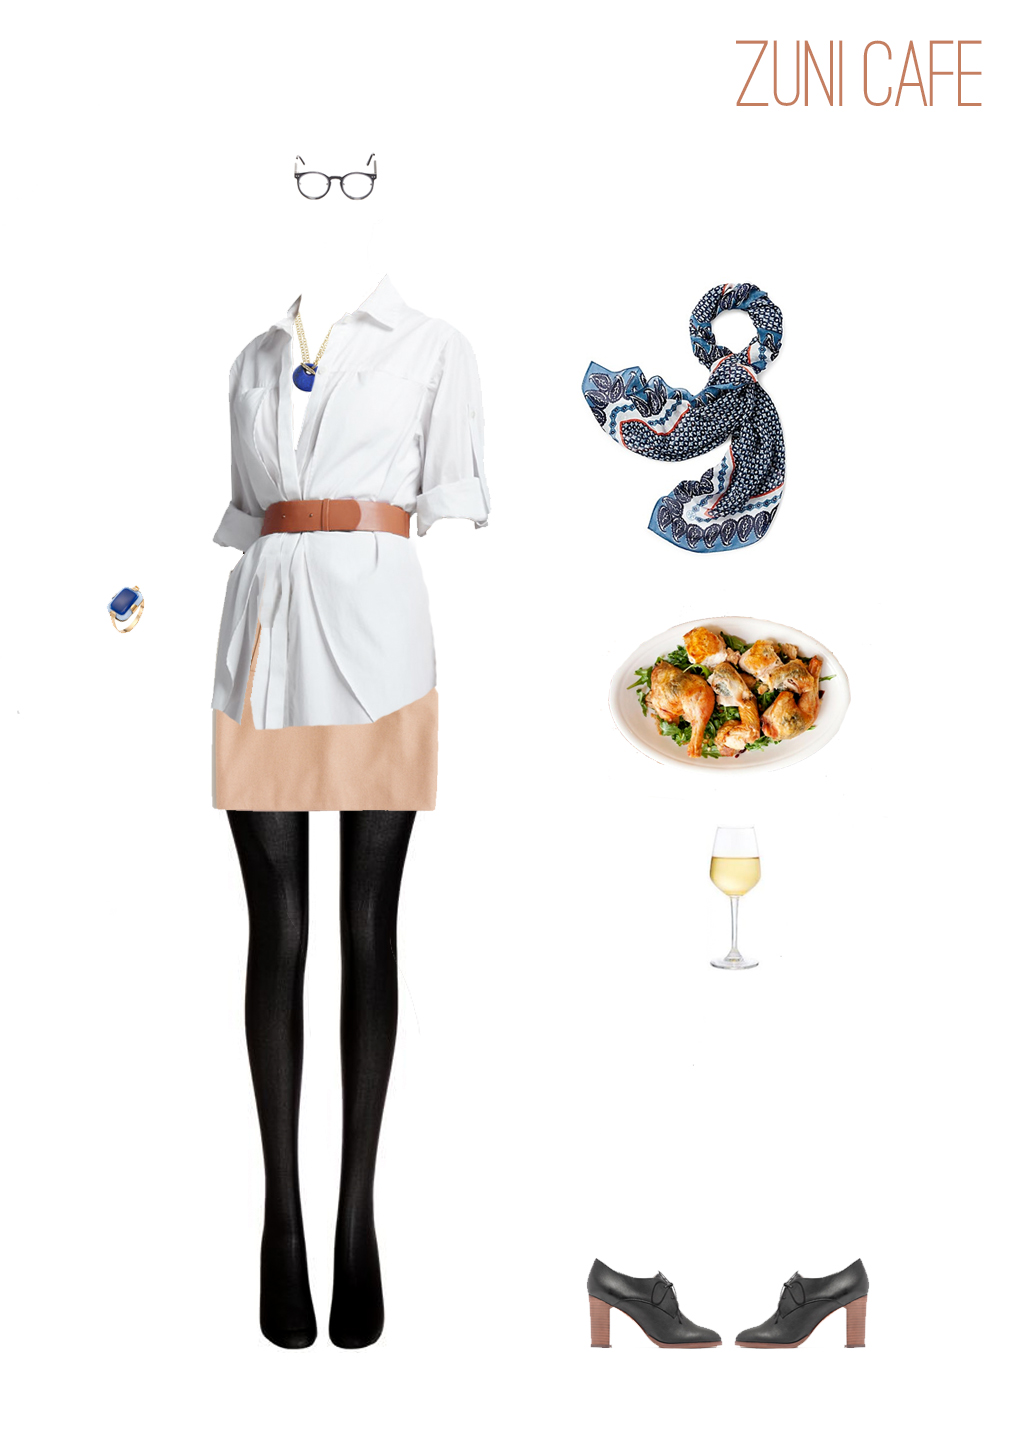 An outfit for lunch at Zuni Cafe